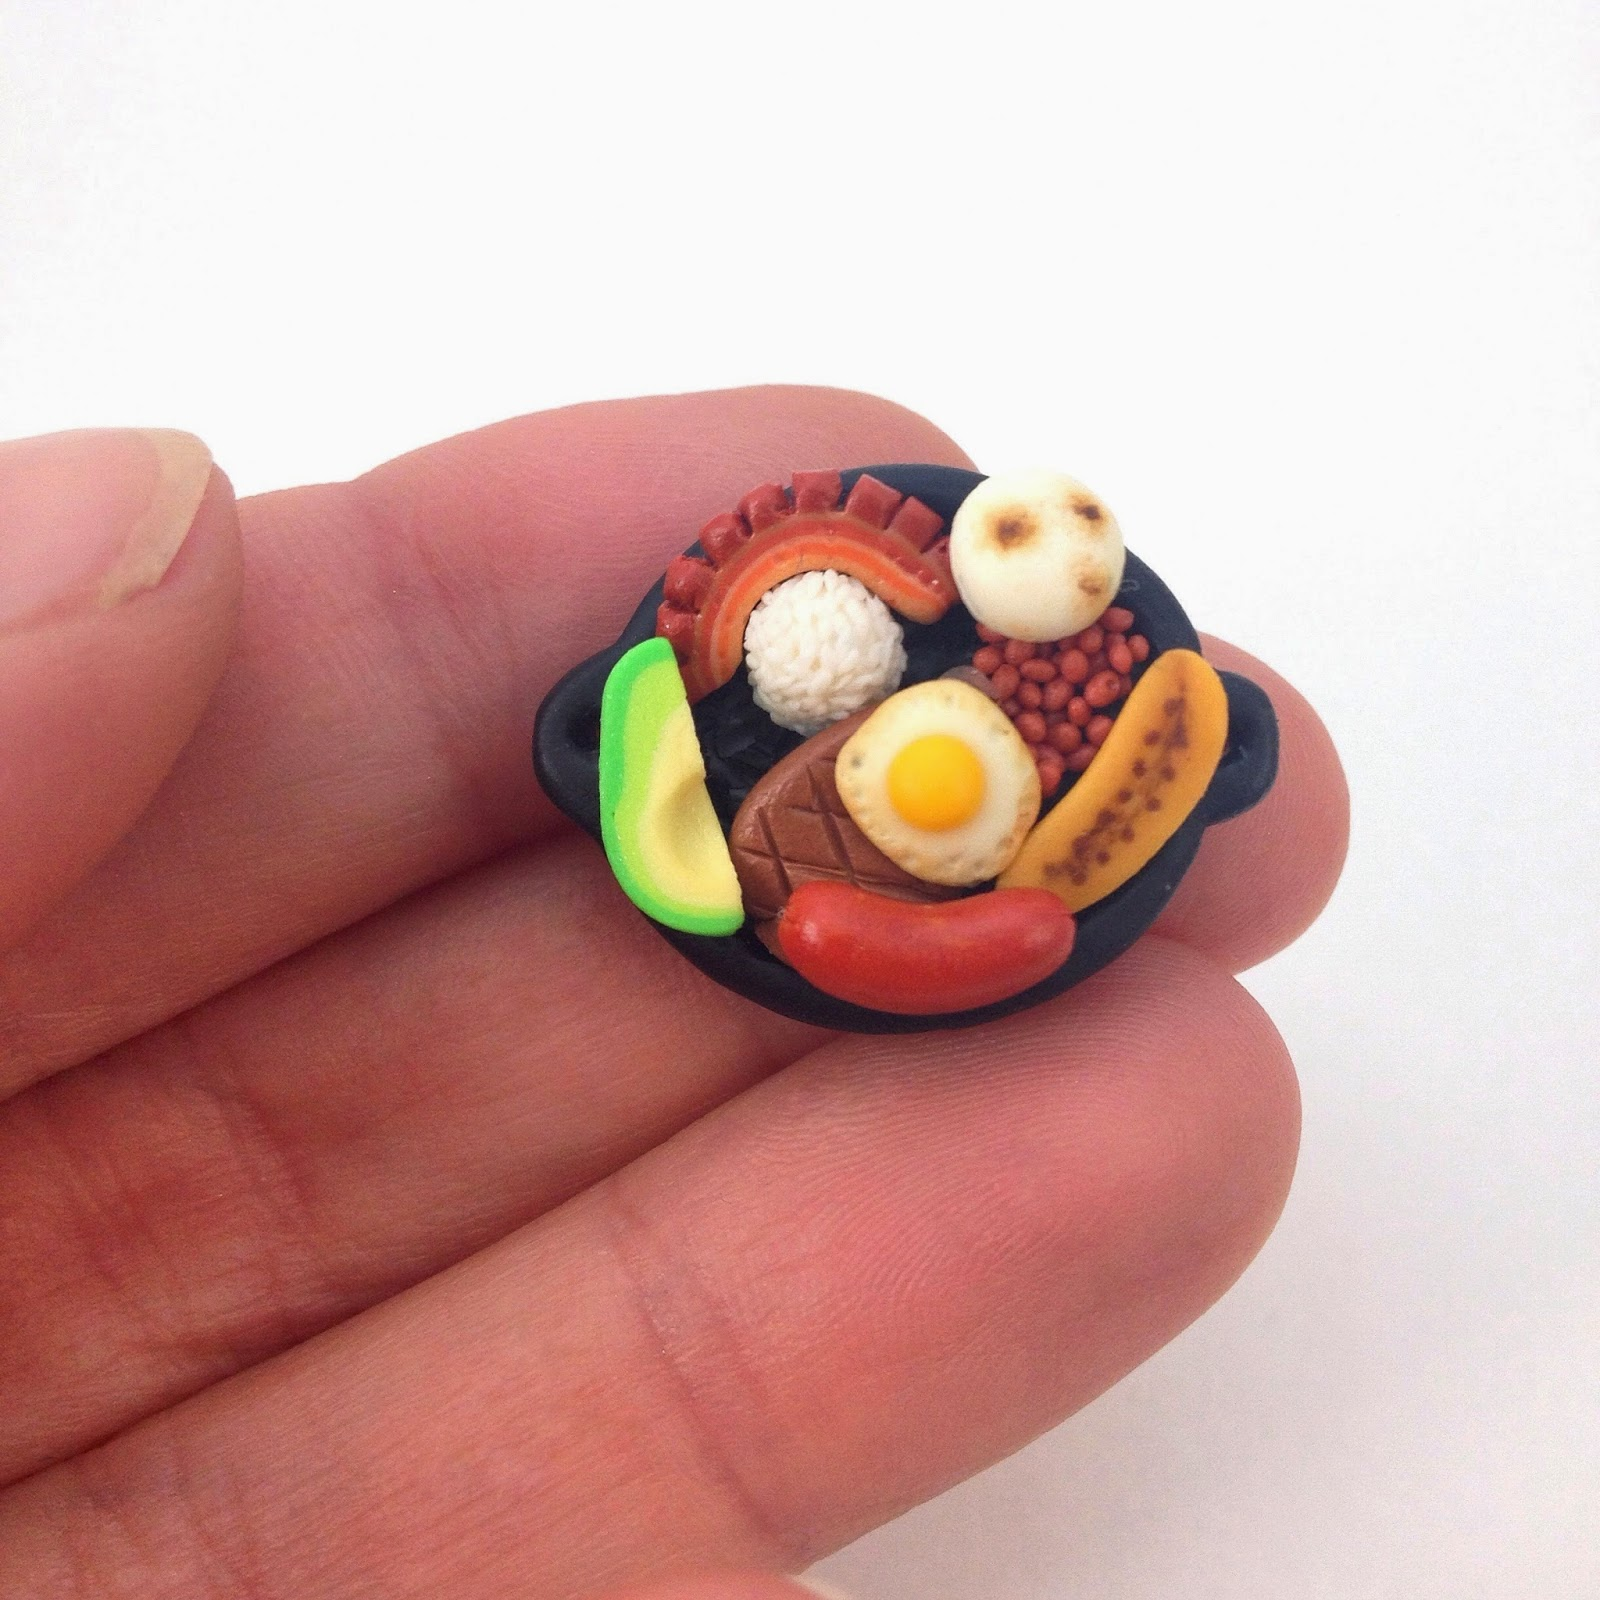 bandeja paisa miniature colombian food mini